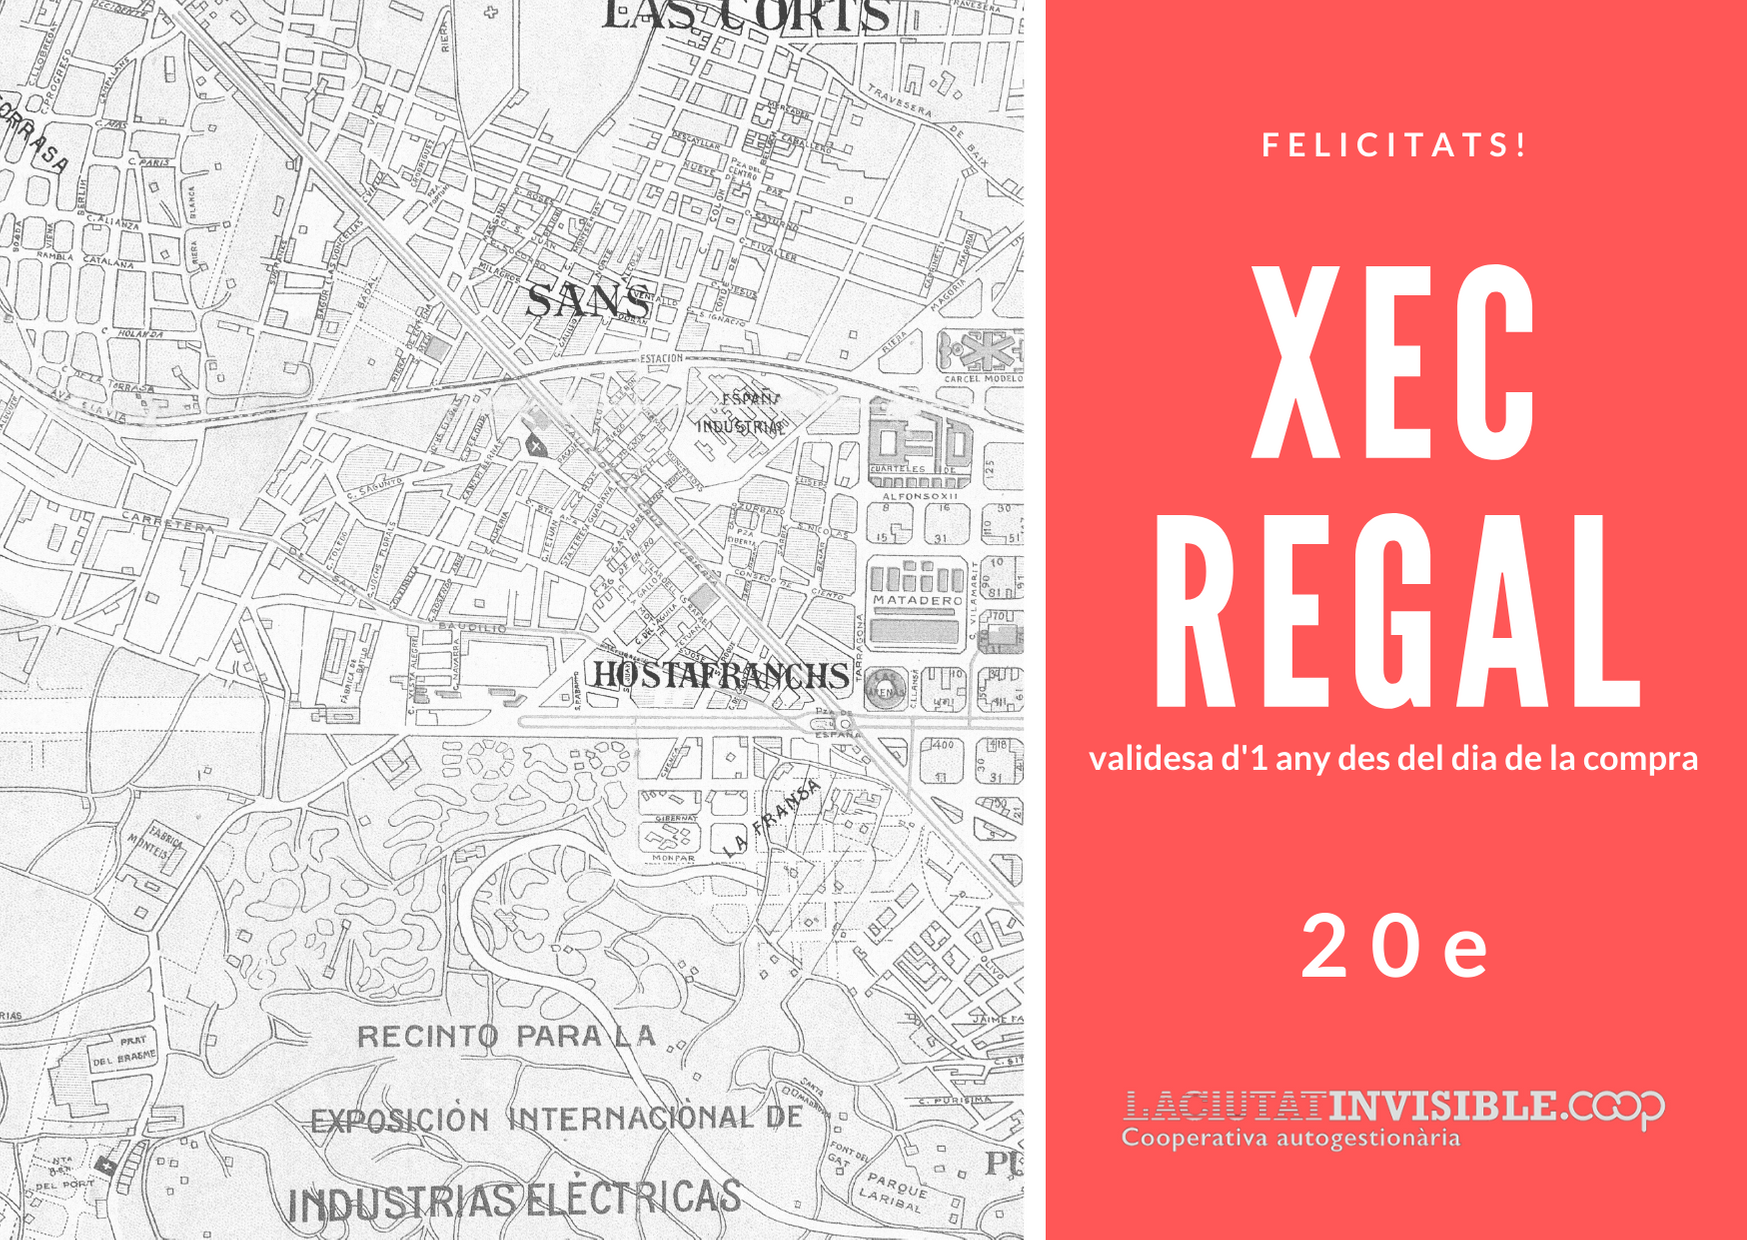 Xec regal 20e